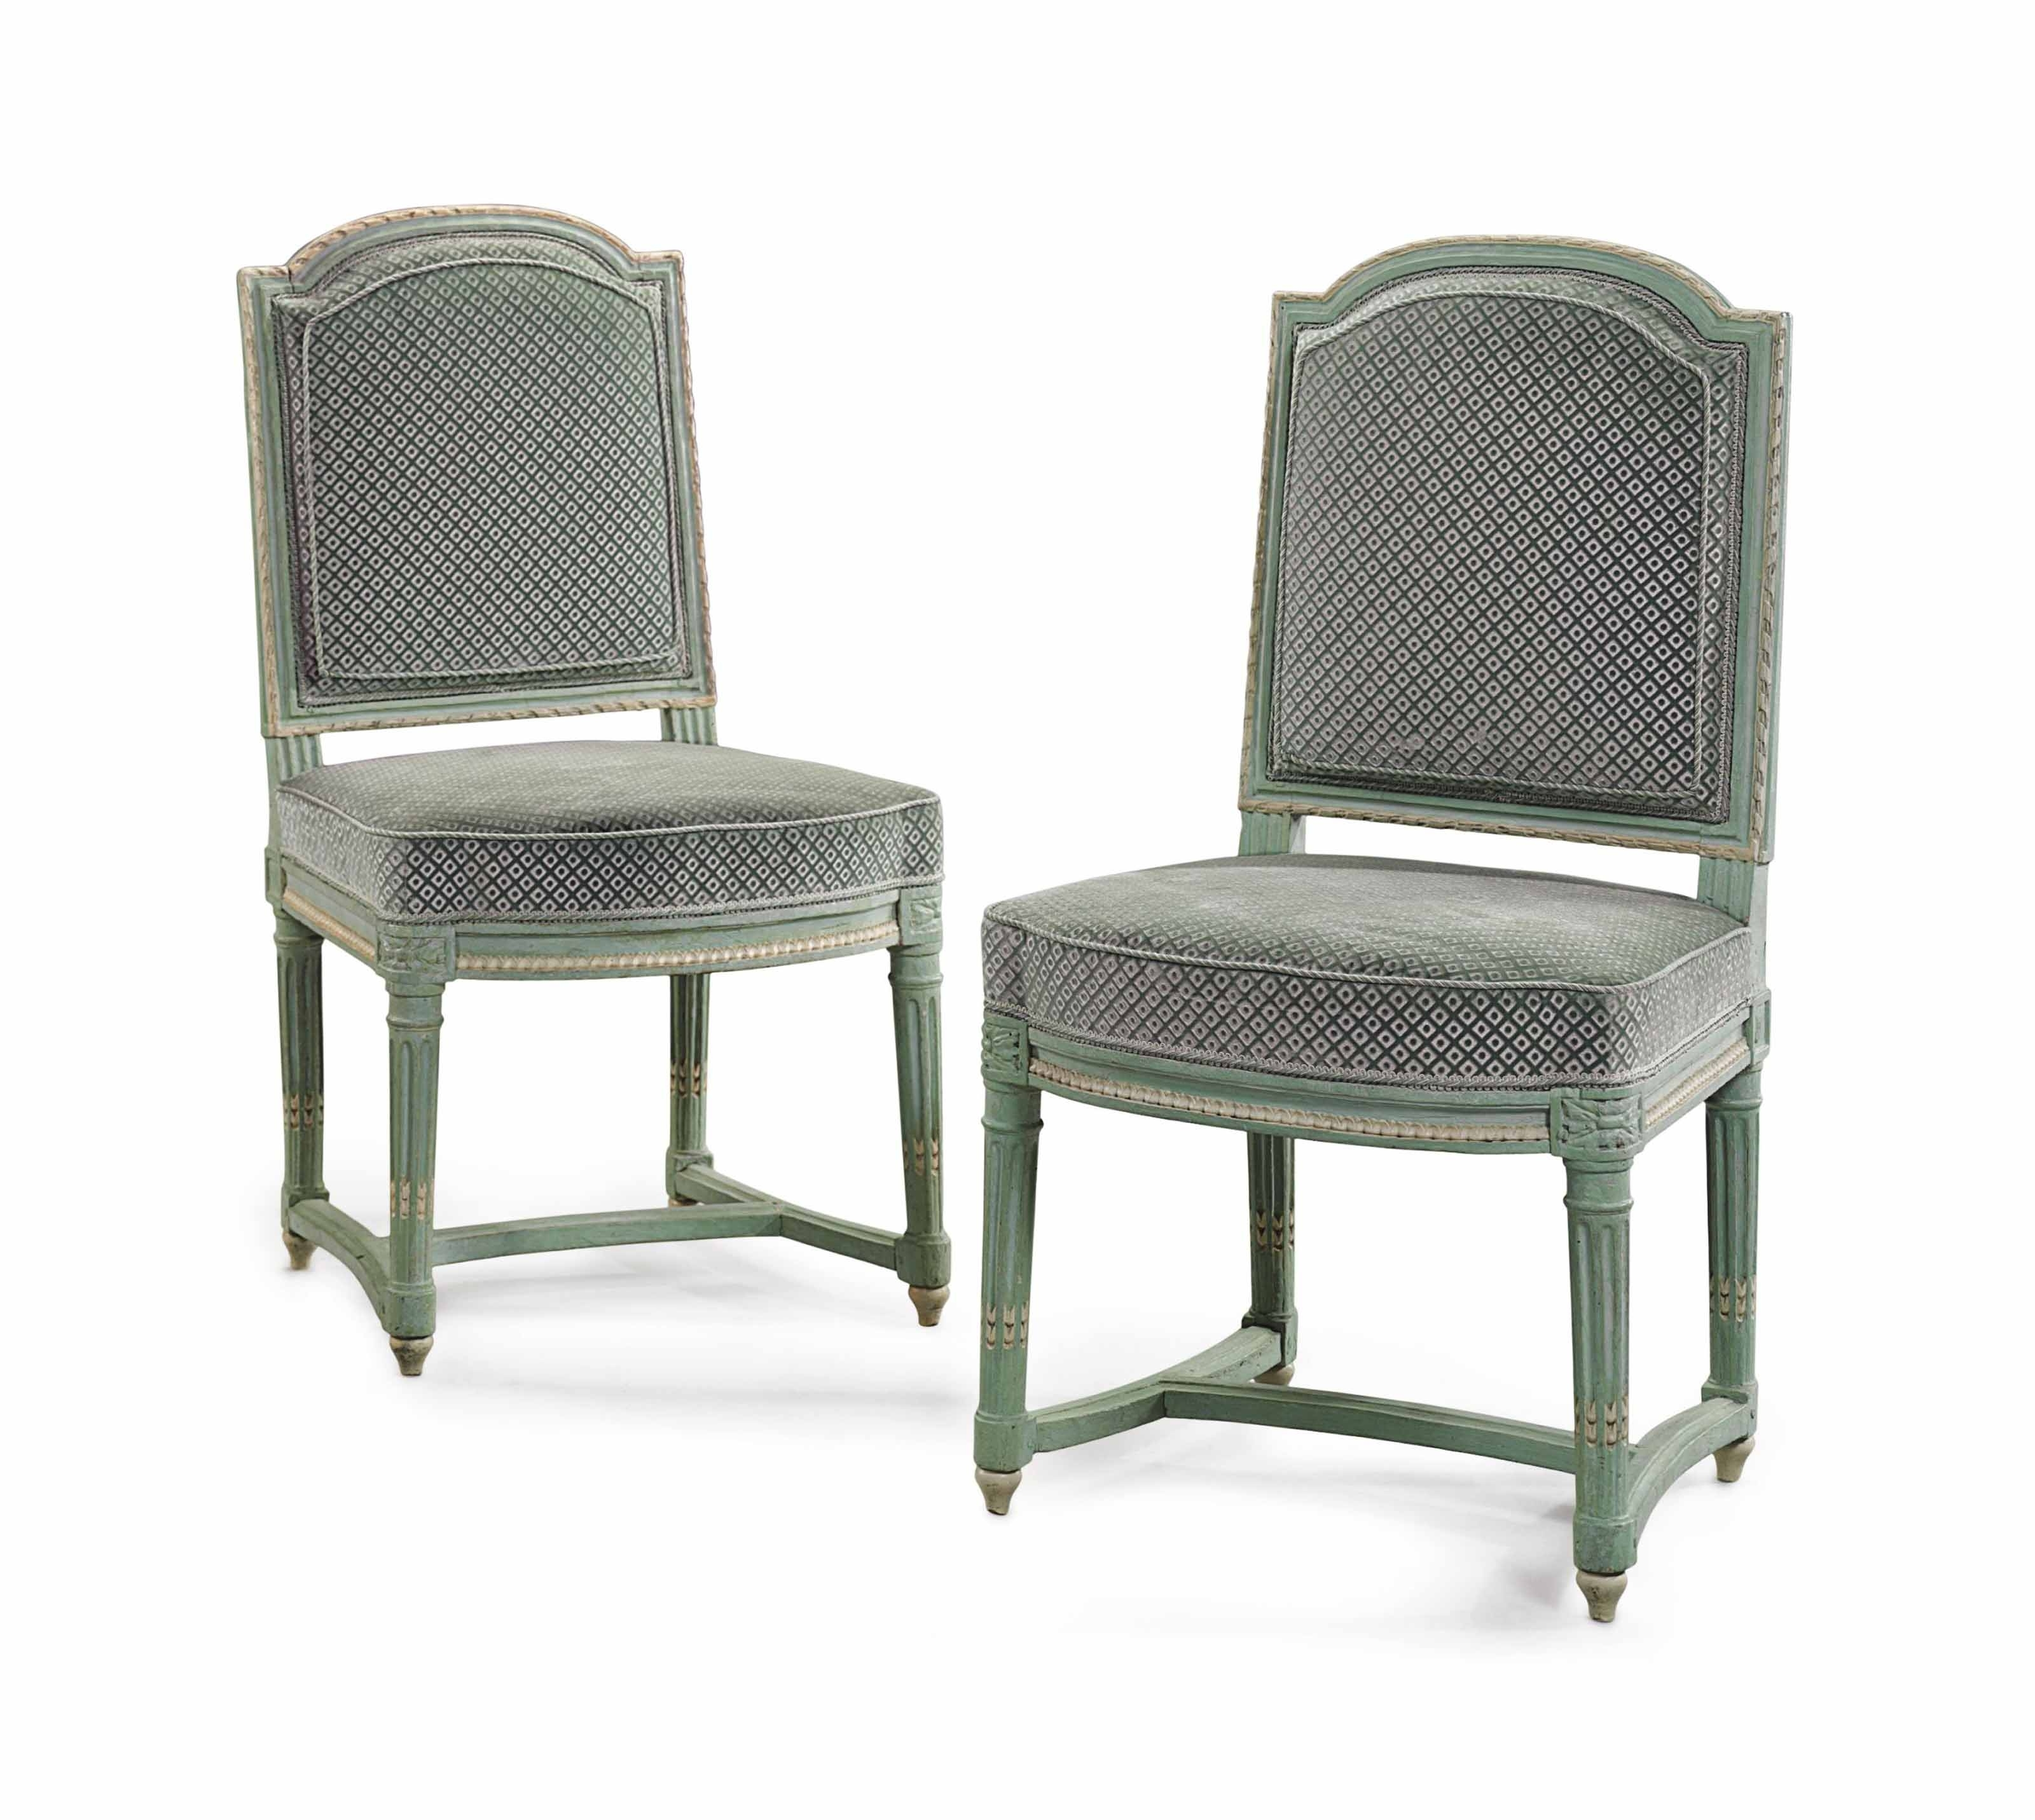 Most Current Green Chaises Intended For A Pair Of Royal Louis Xvi Green And White Painted Chaisesjean (View 10 of 15)